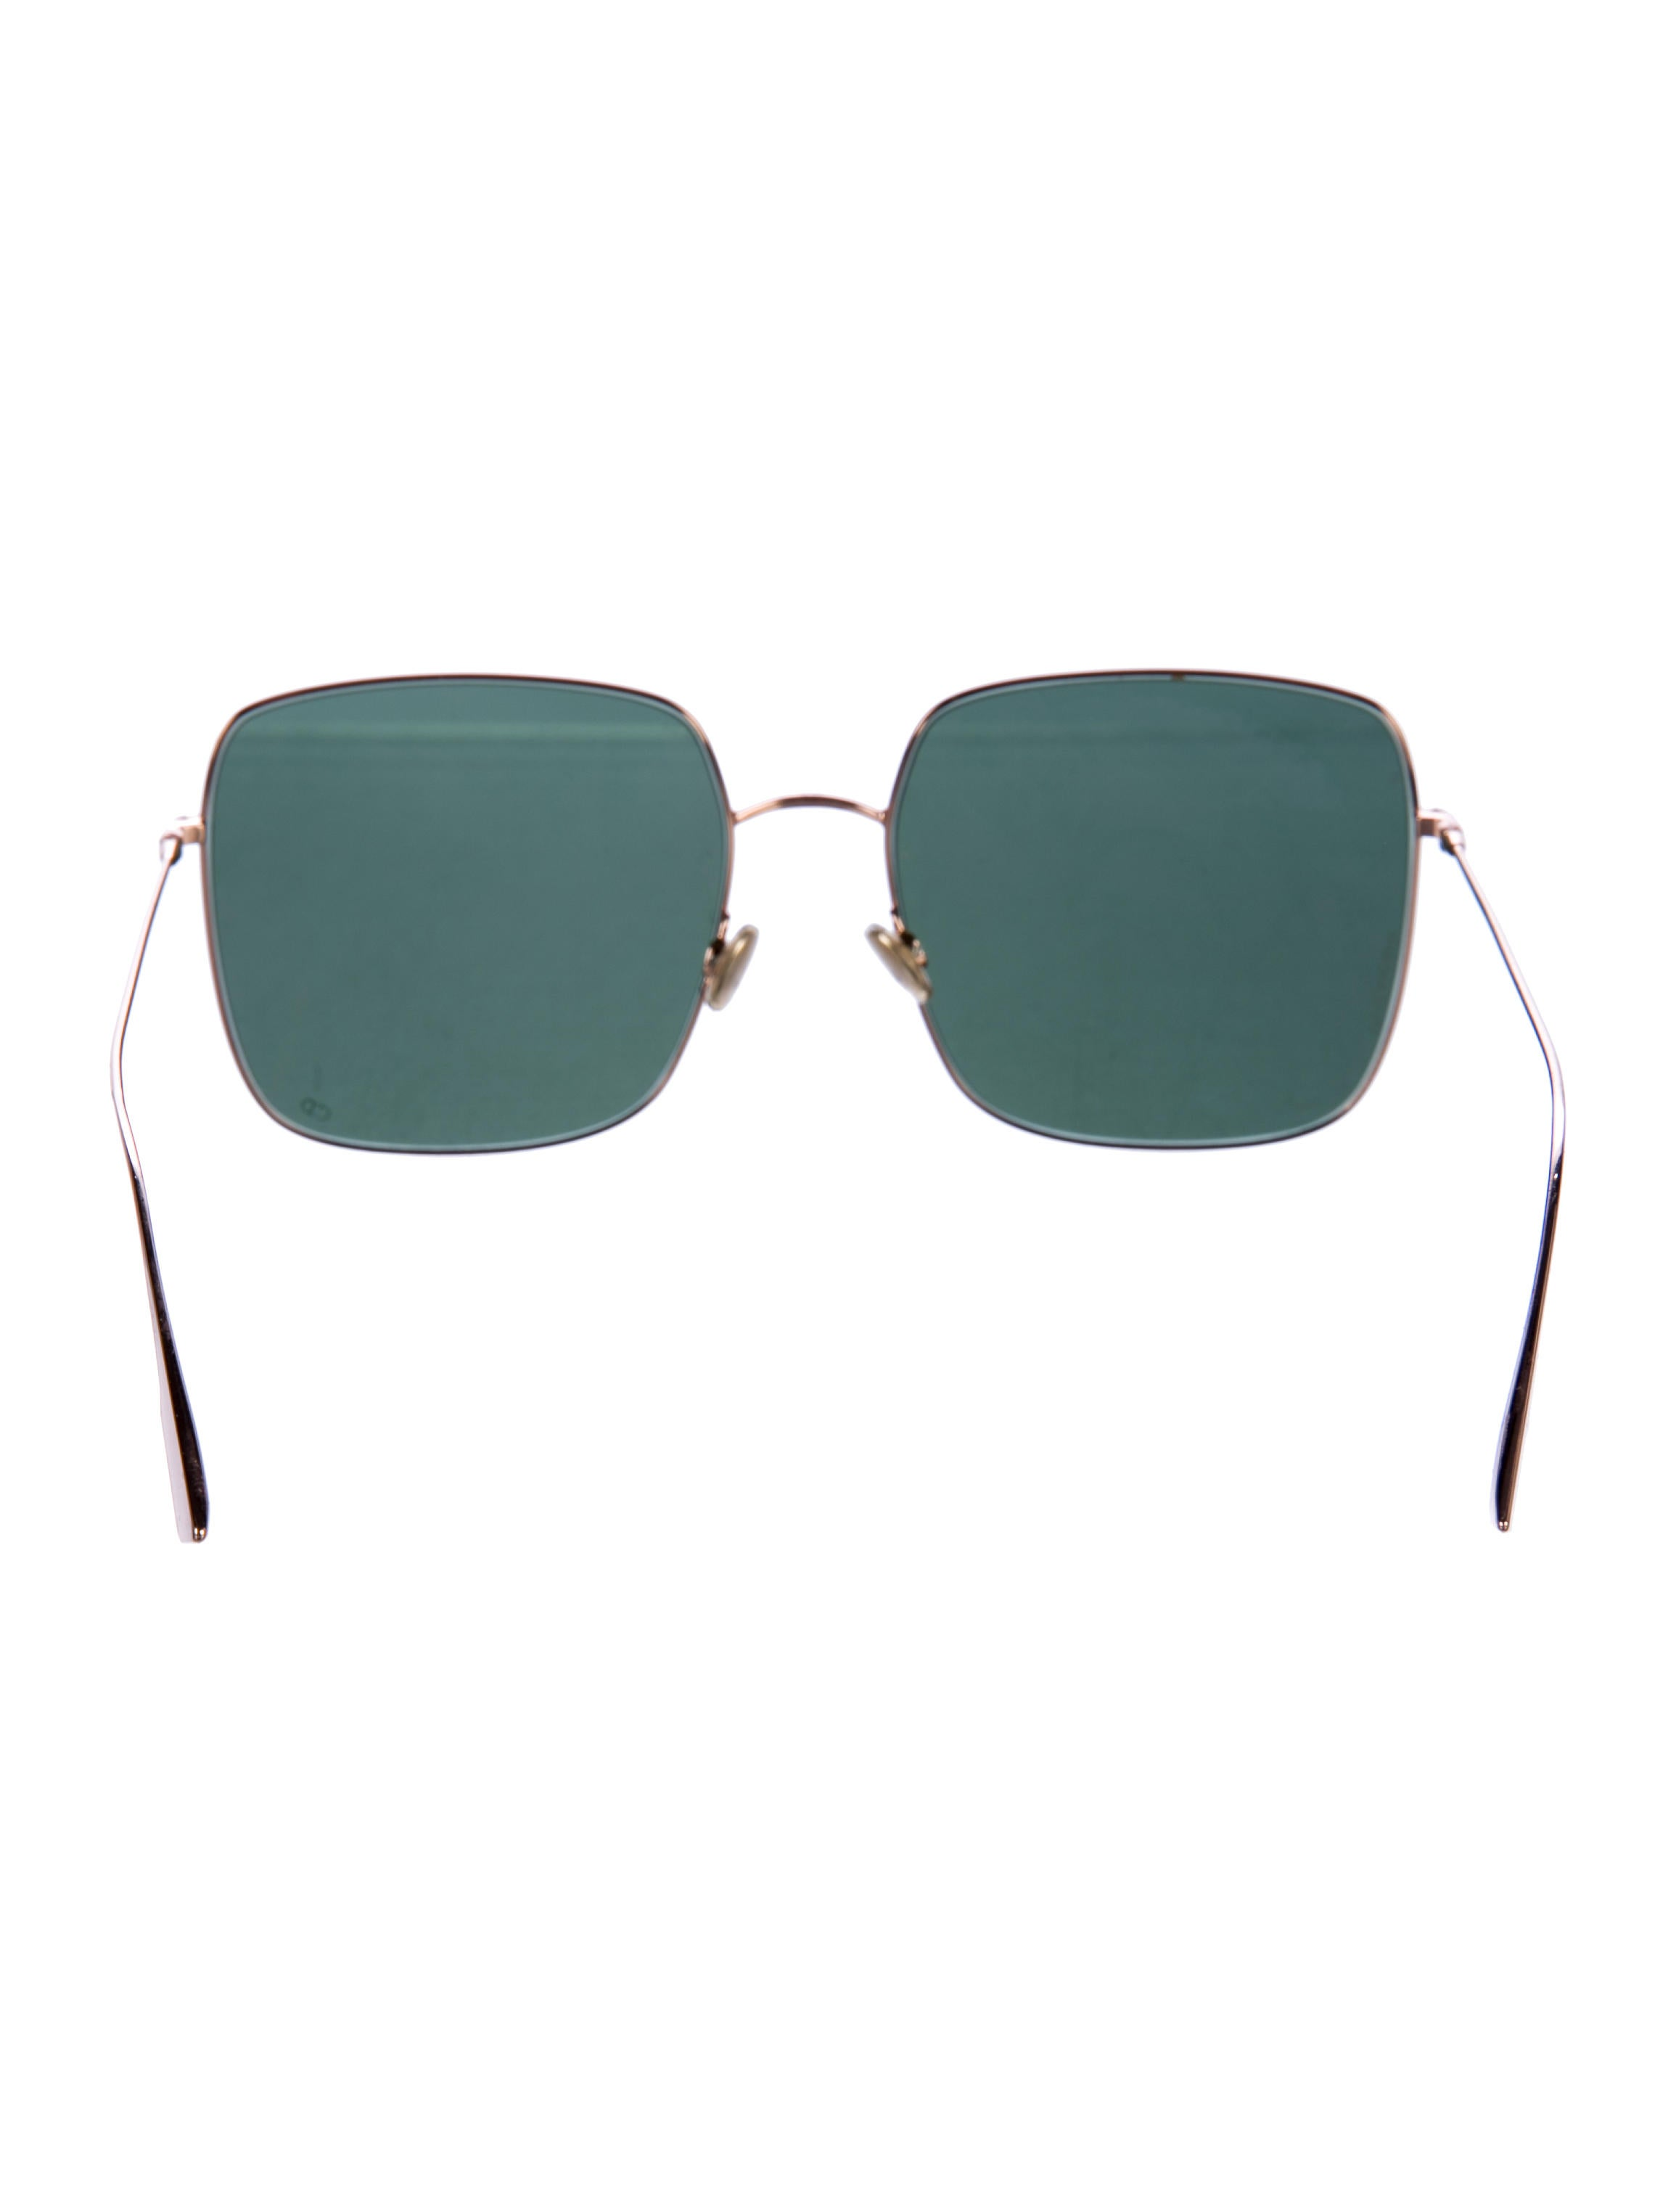 New DIO r Square Oversized stellaire5 Sunglasses for men or Women - green Ogyg1